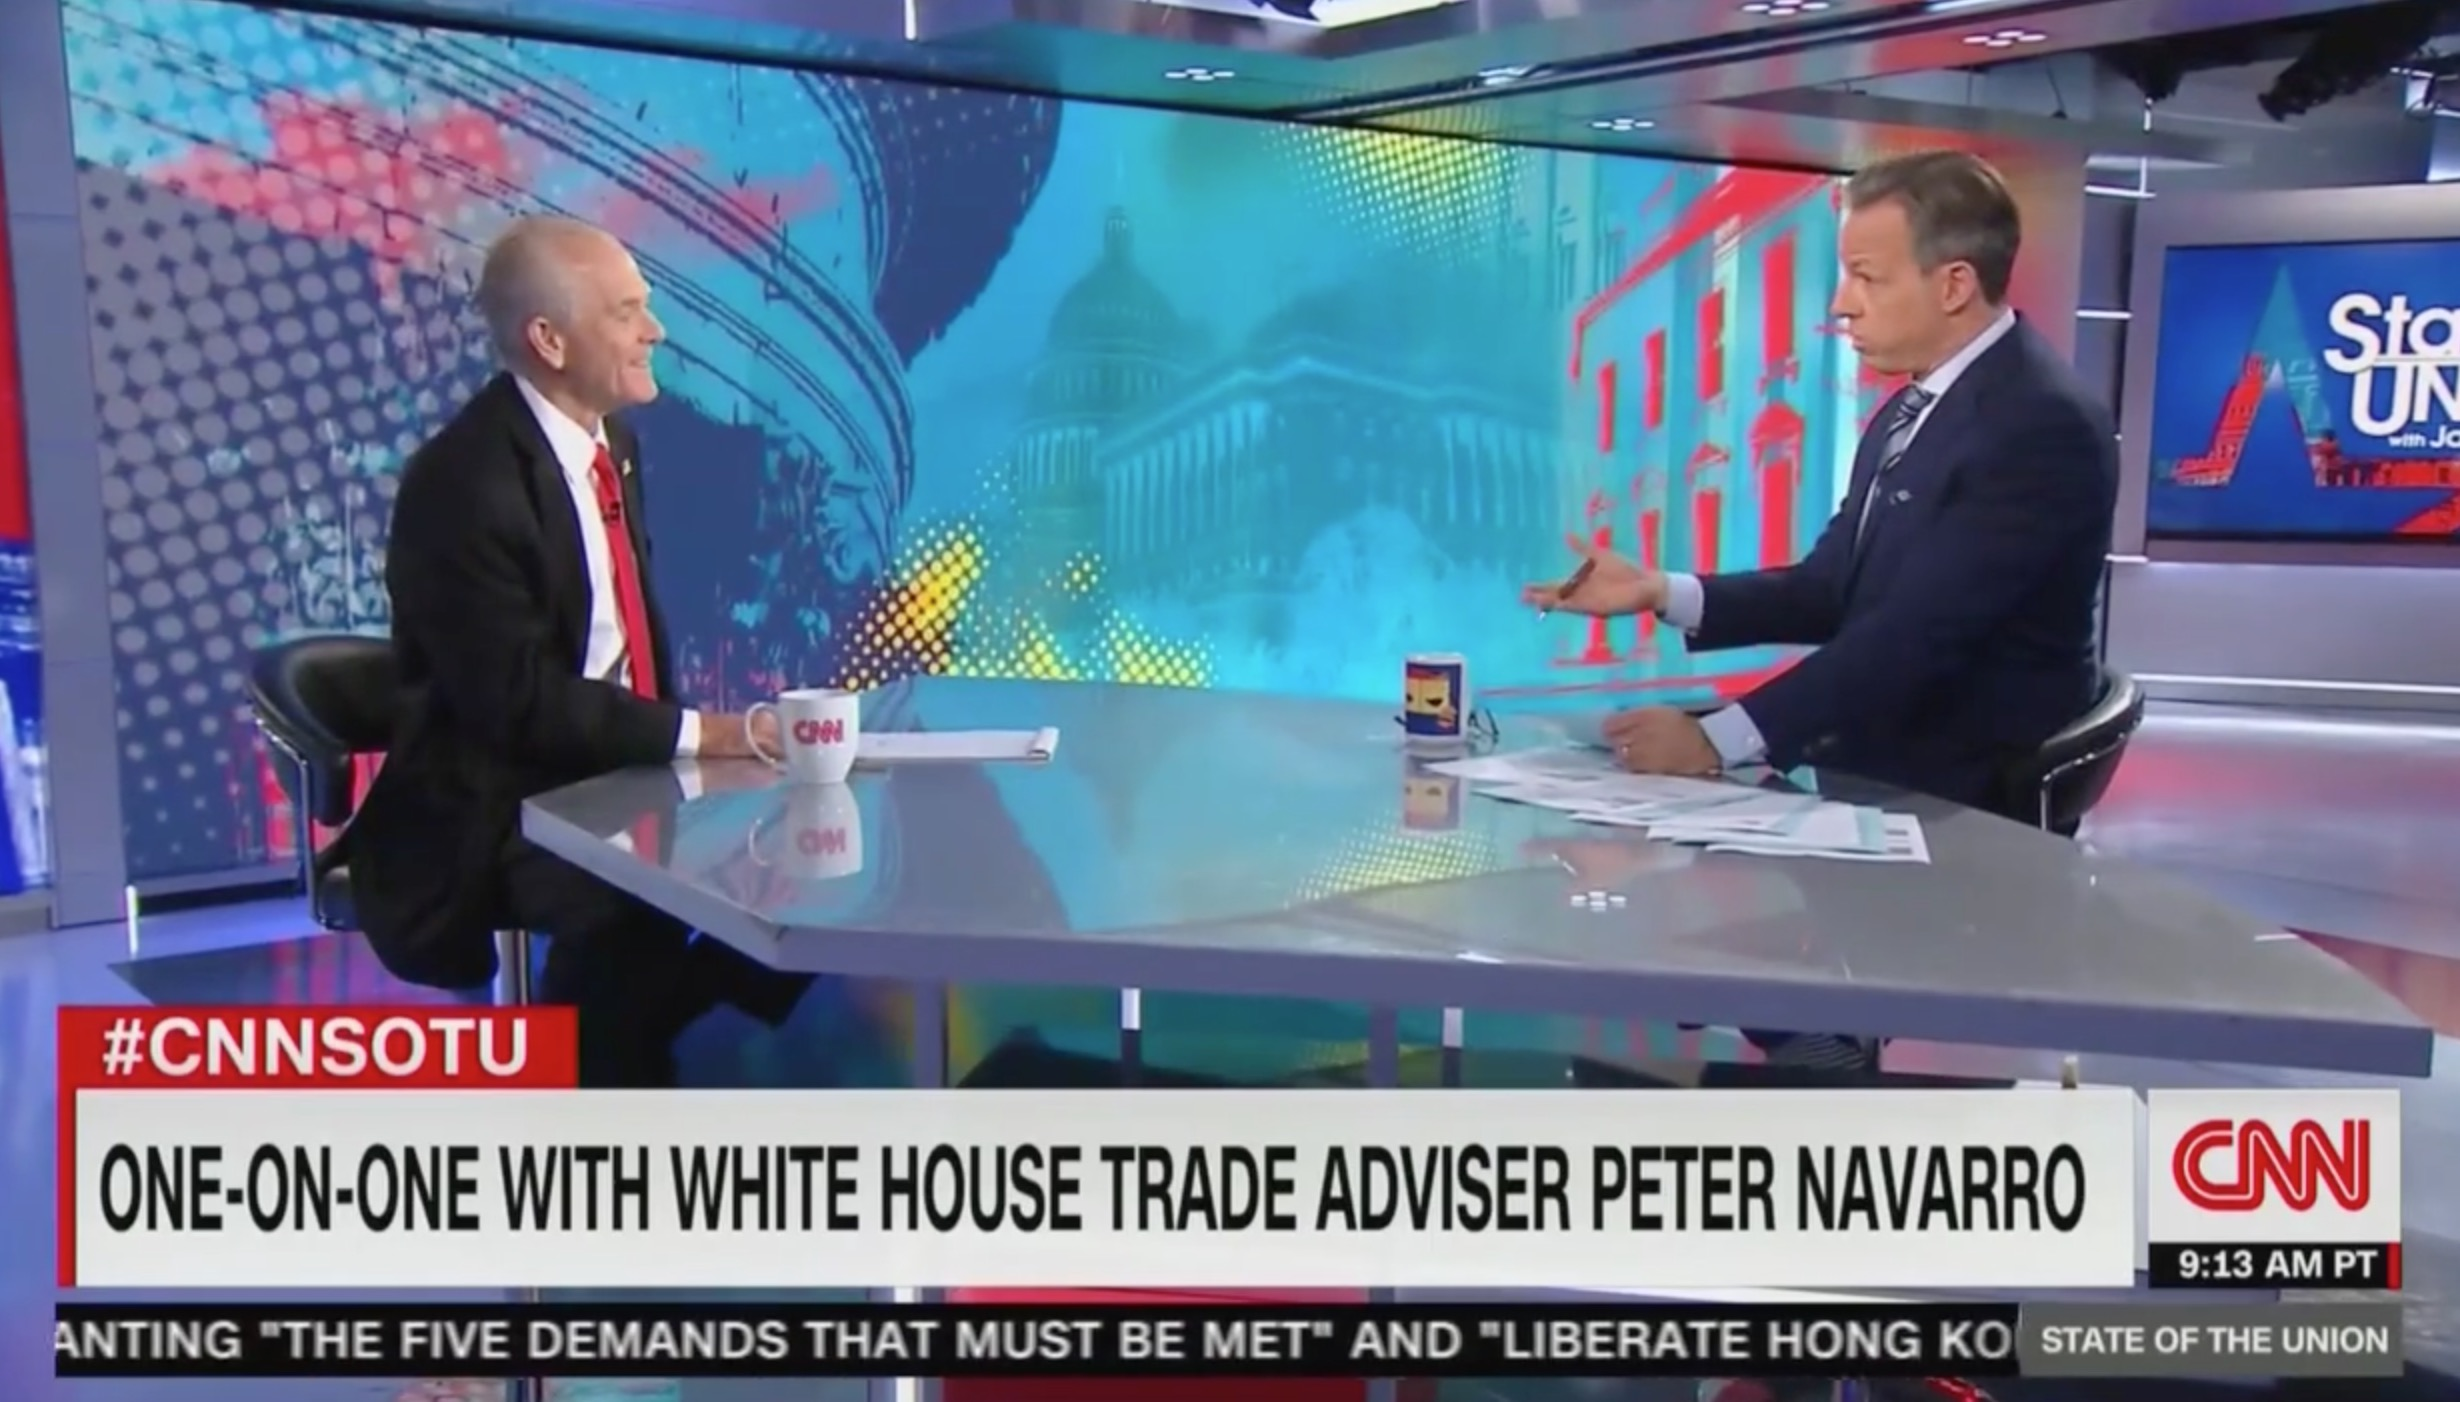 Jake Tapper Presses Navarro on the Impact of Tariffs: 'Economist After Economist' Saying You're Wrong